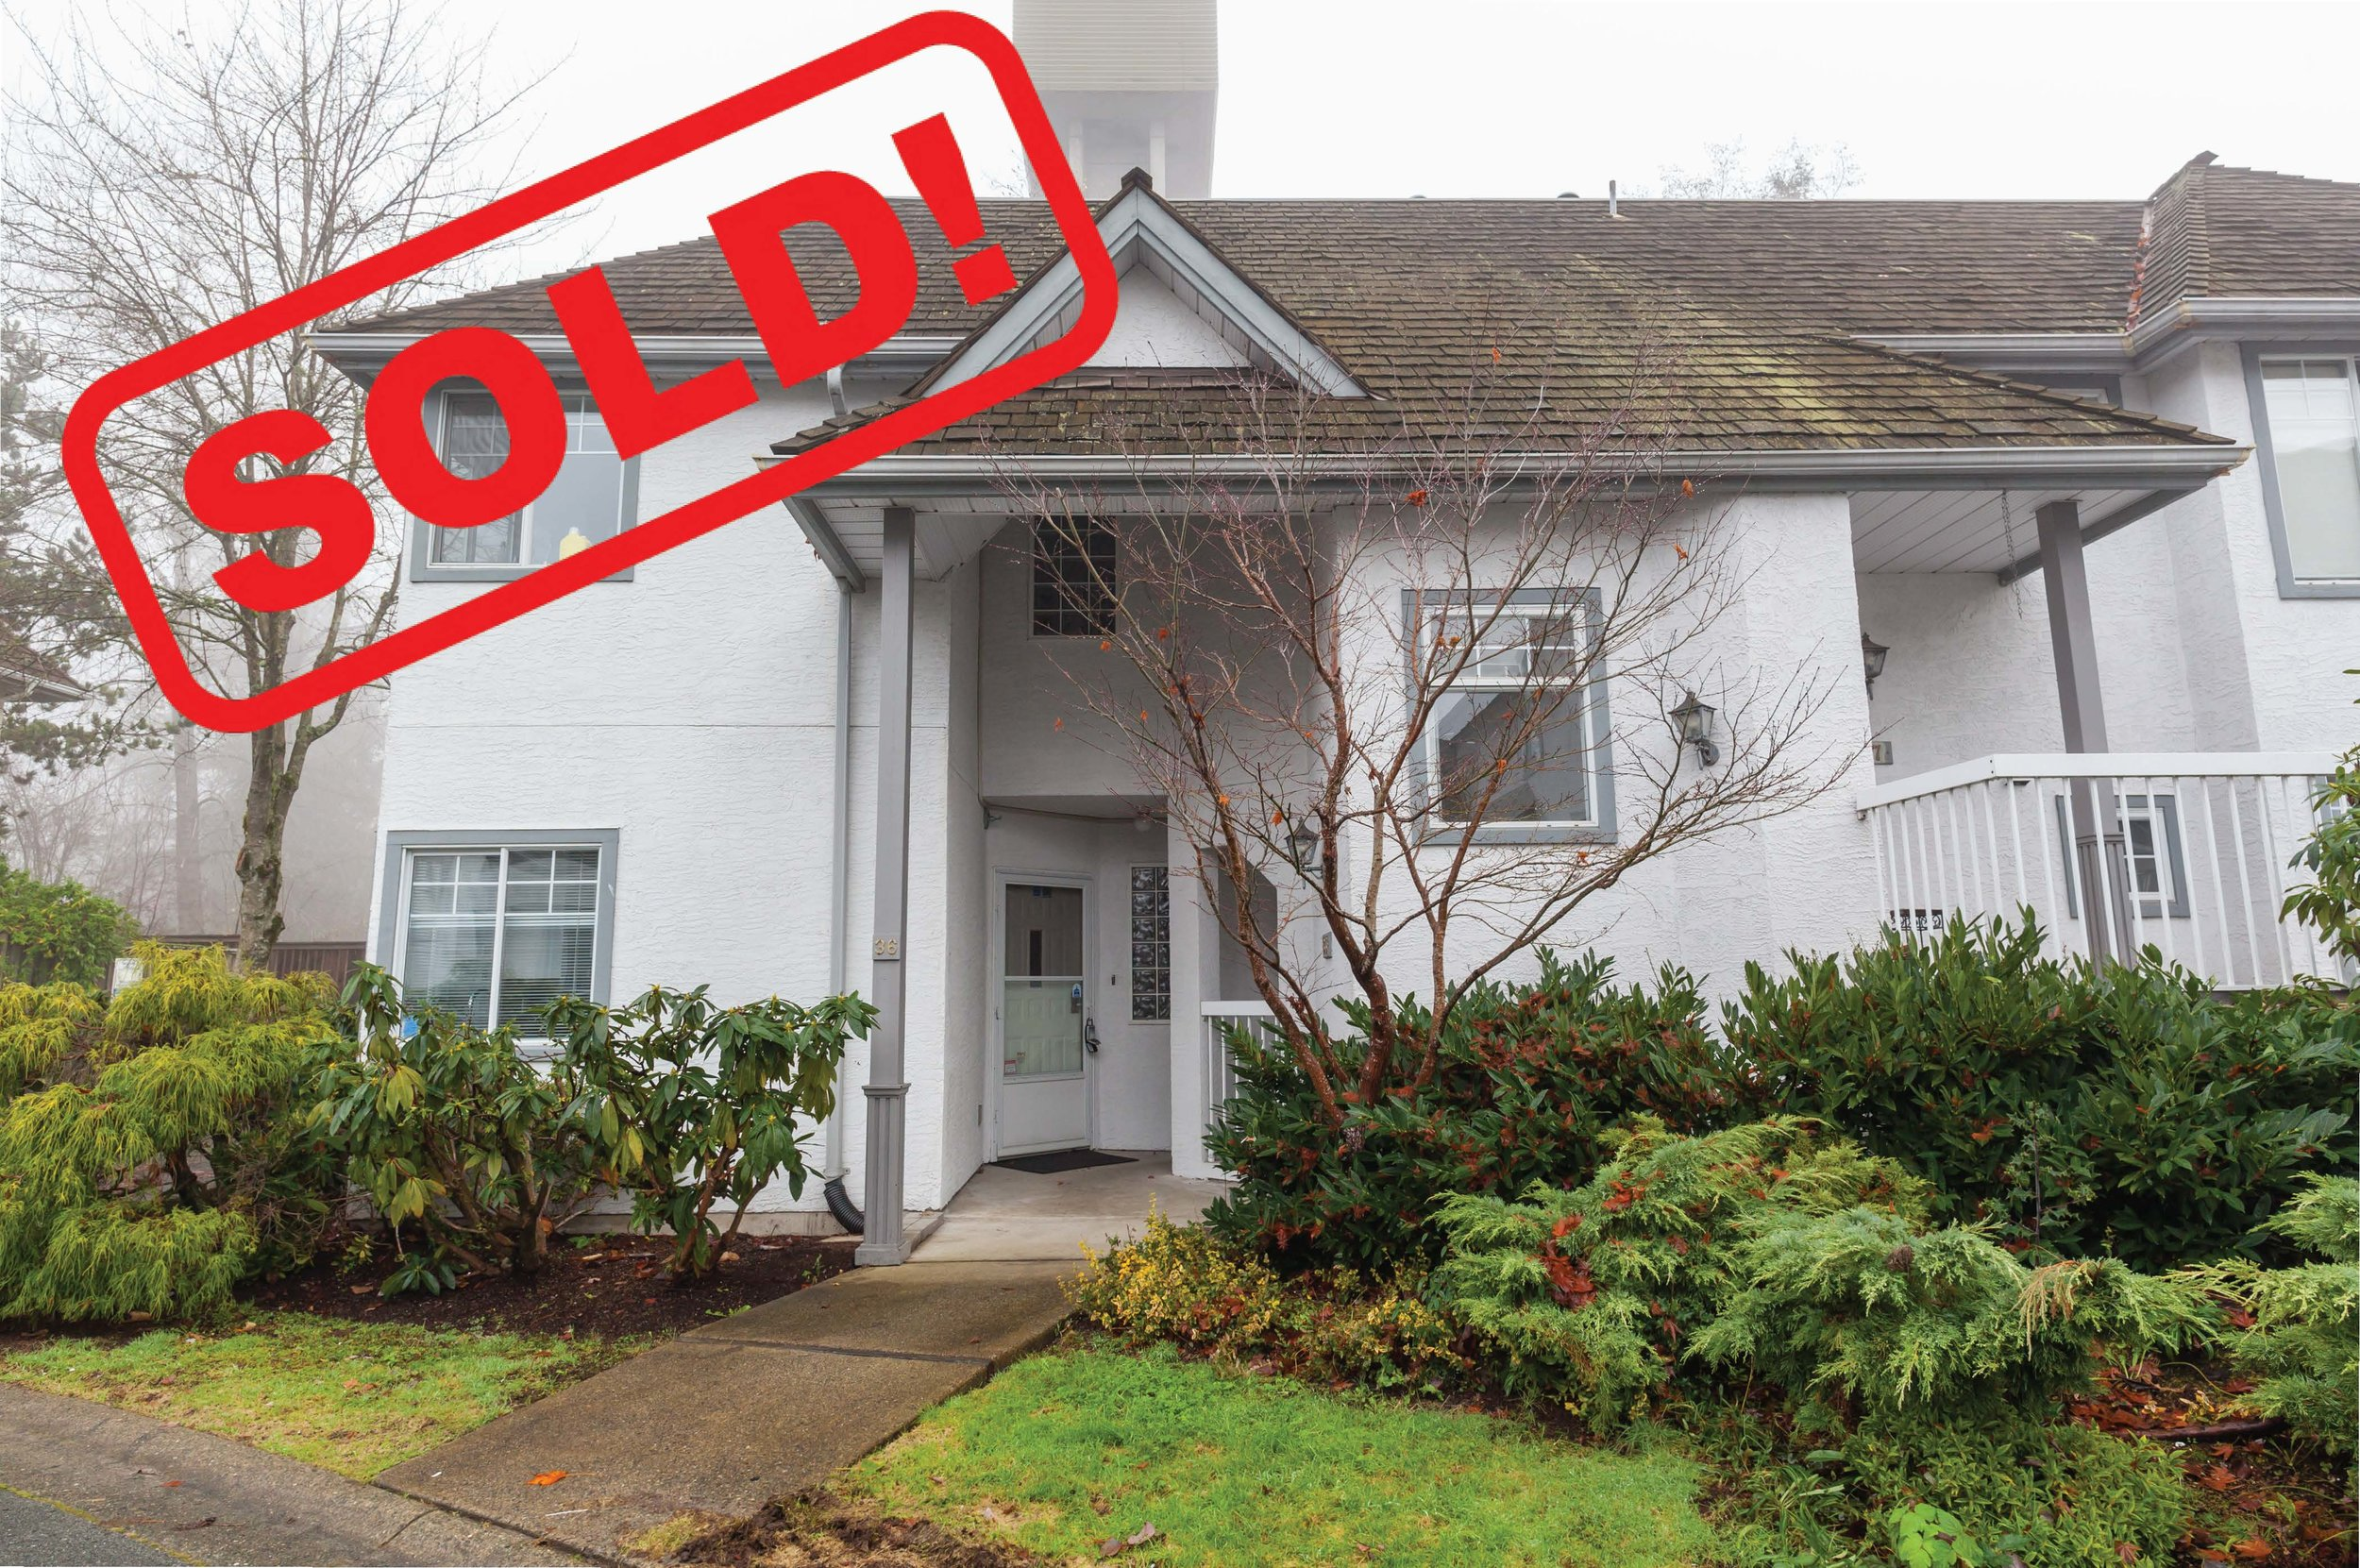 36-6512 Chambord Place   SOLD FOR: $675,000  2 BED | 2 BATH | 1,125 SF